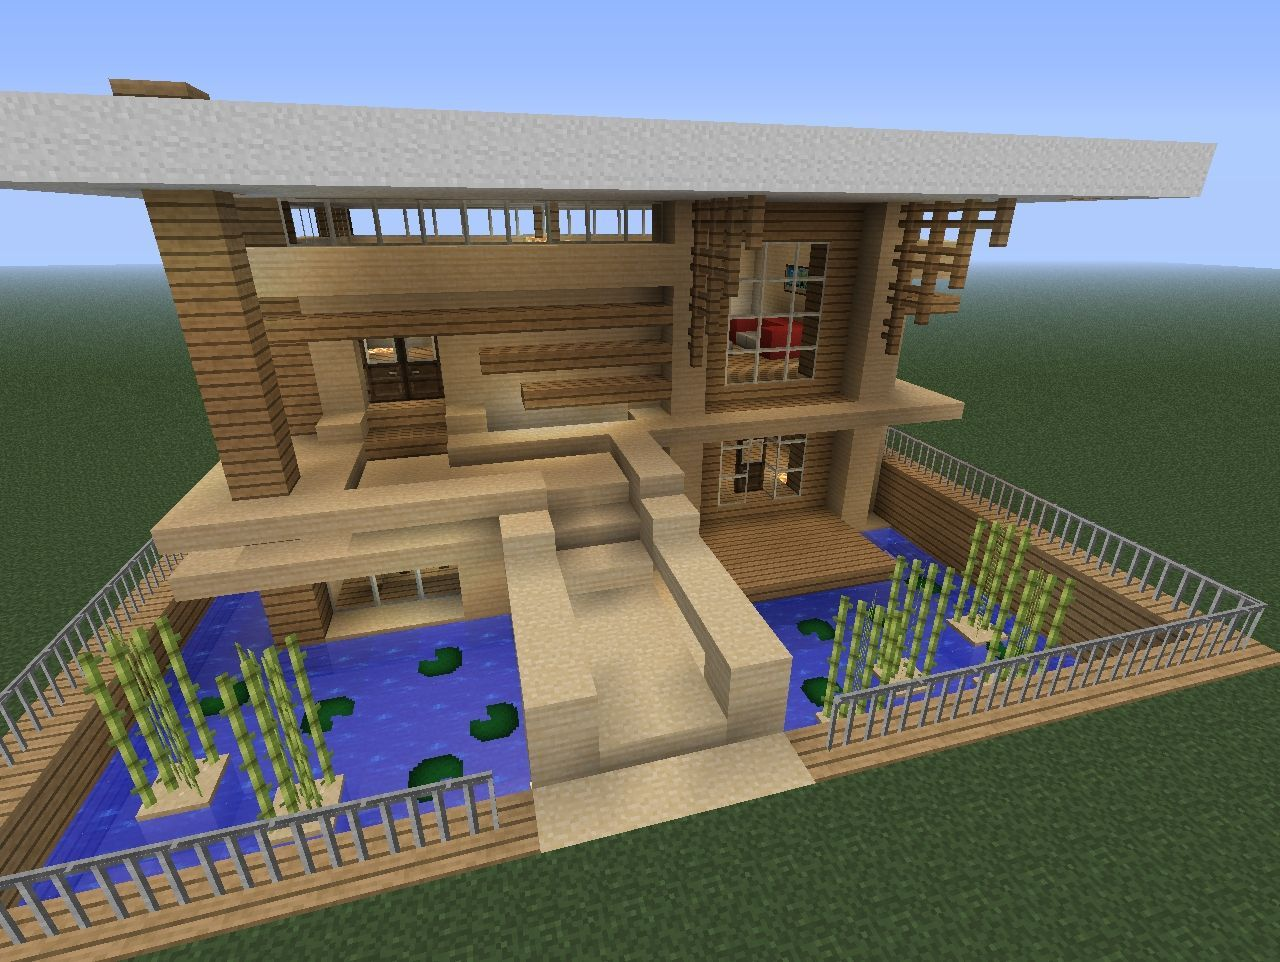 1000+ ideas about Minecraft Houses on Pinterest Minecraft ... - ^